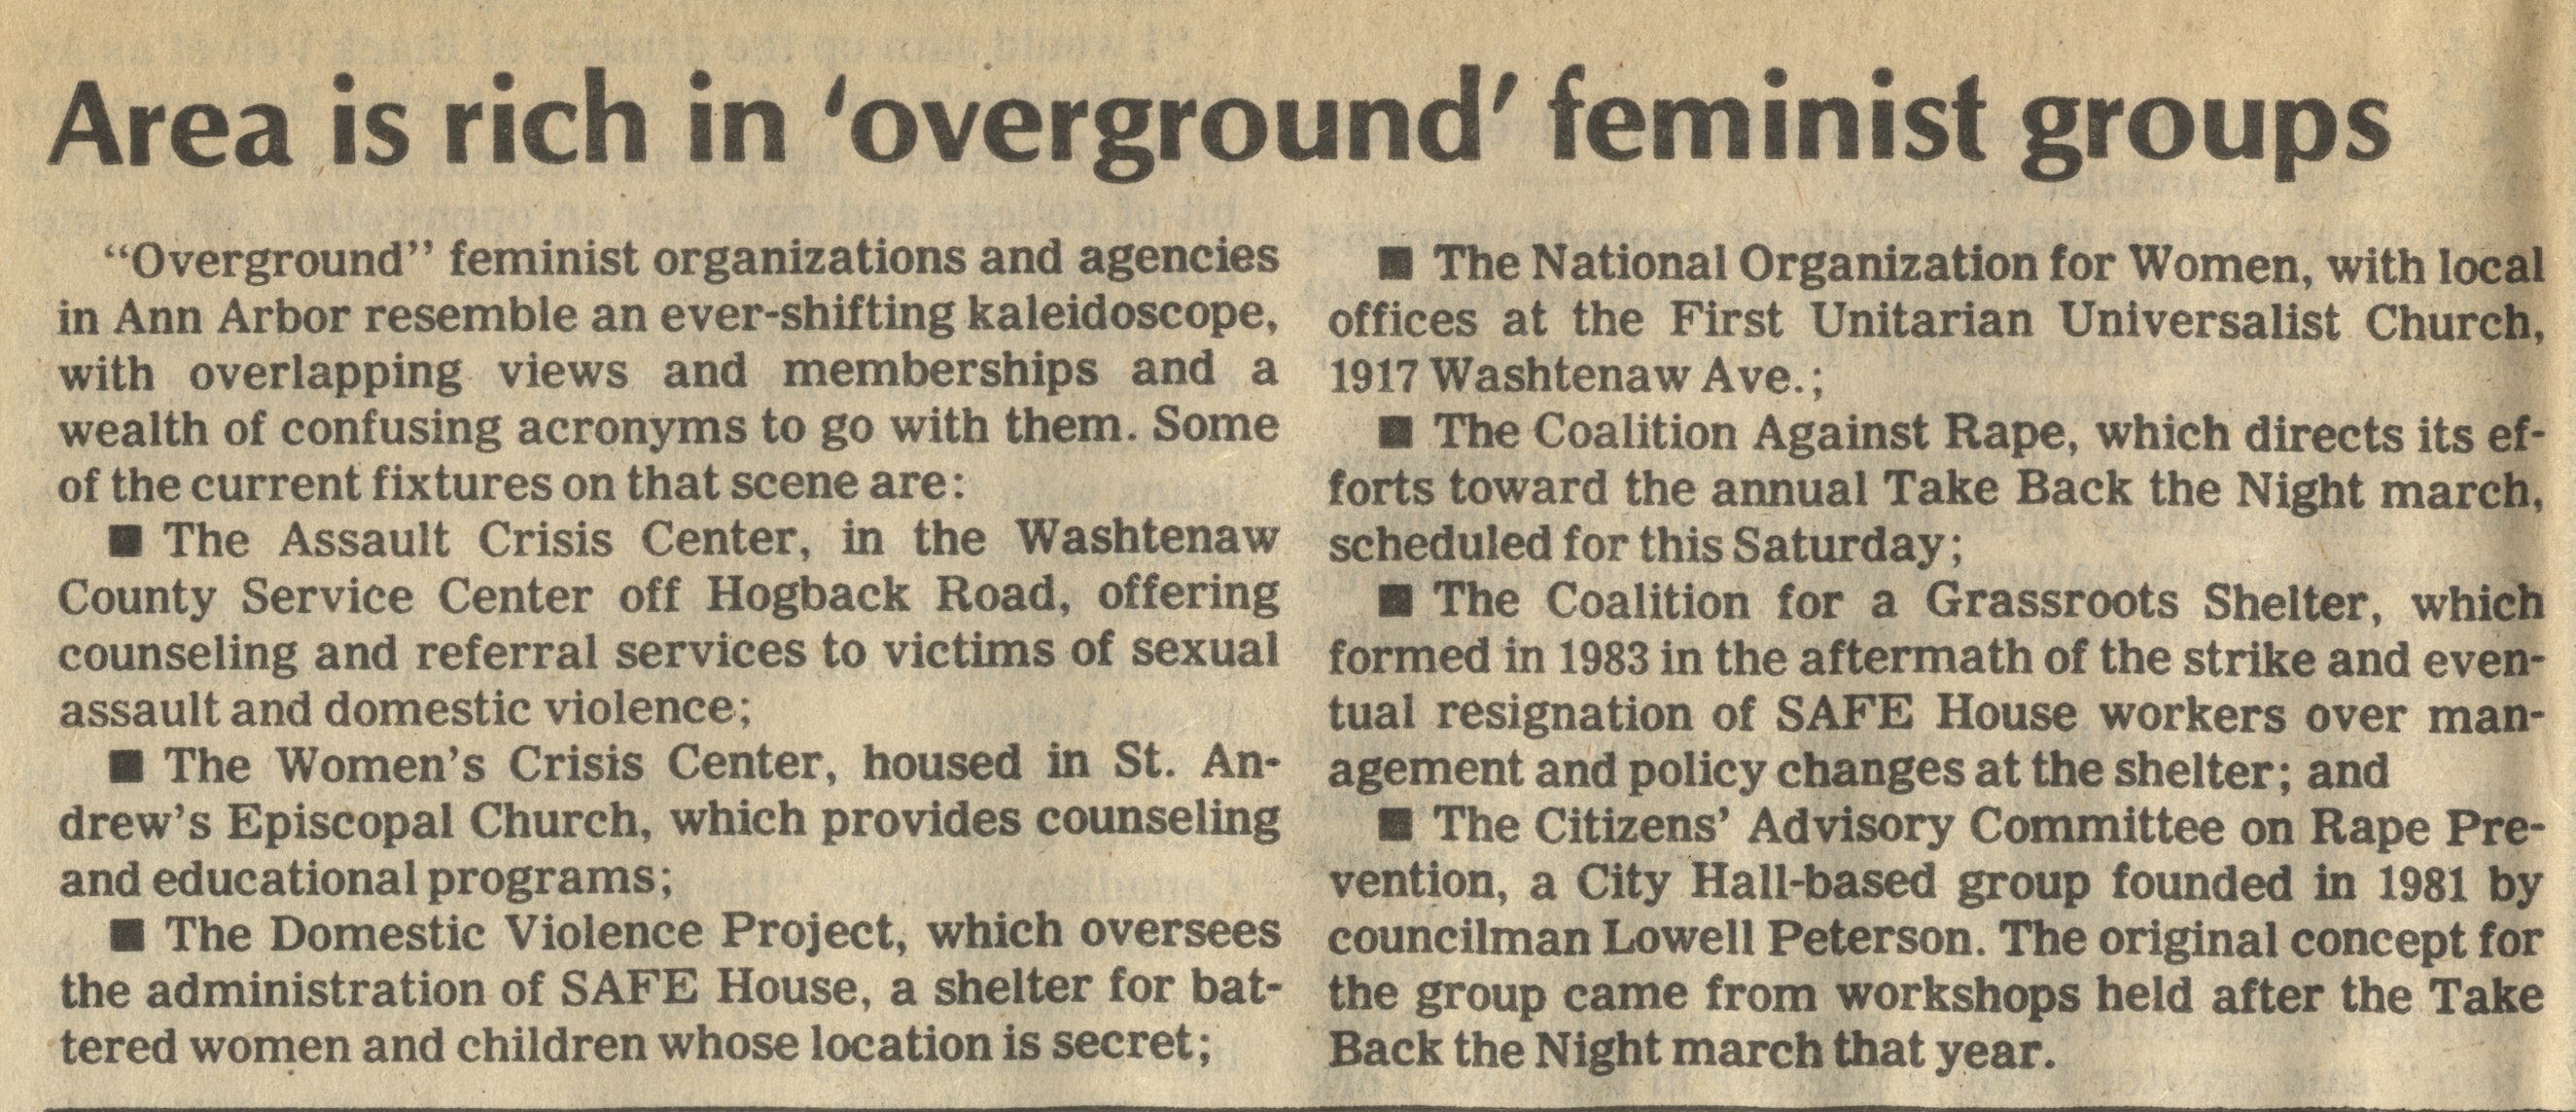 Area Is Rich In ' Overground ' Feminist Groups image